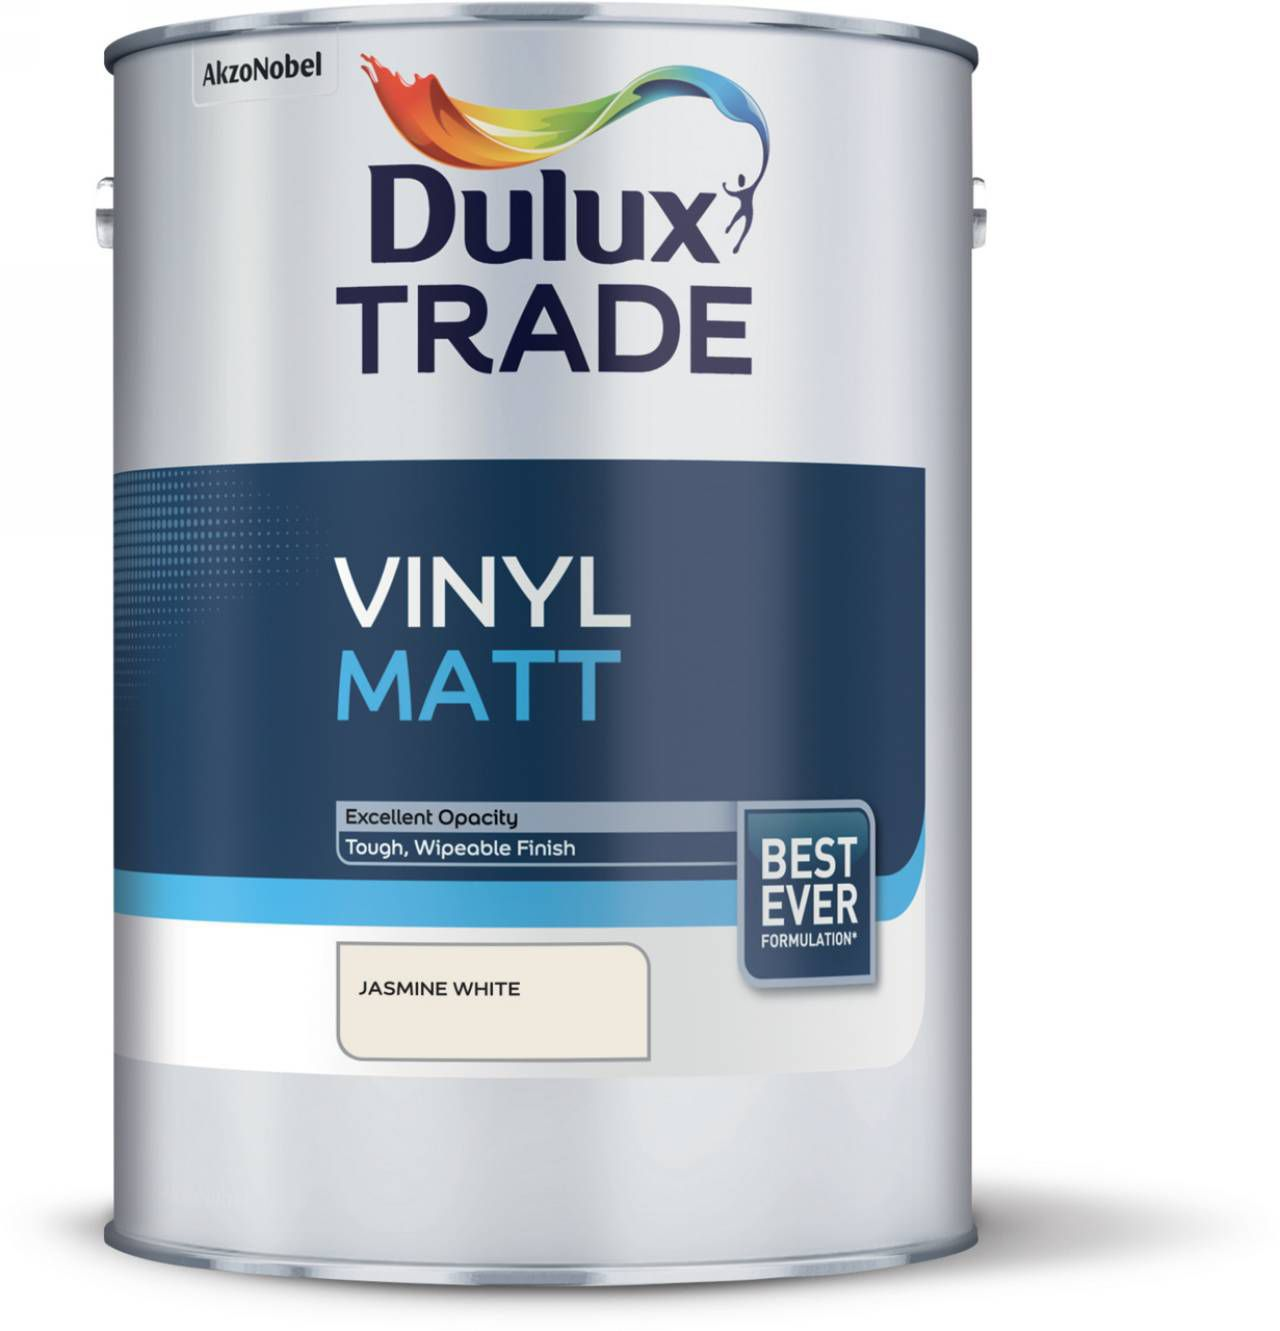 Dulux Trade Tinted Vinyl Matt Cheaper at B&Q